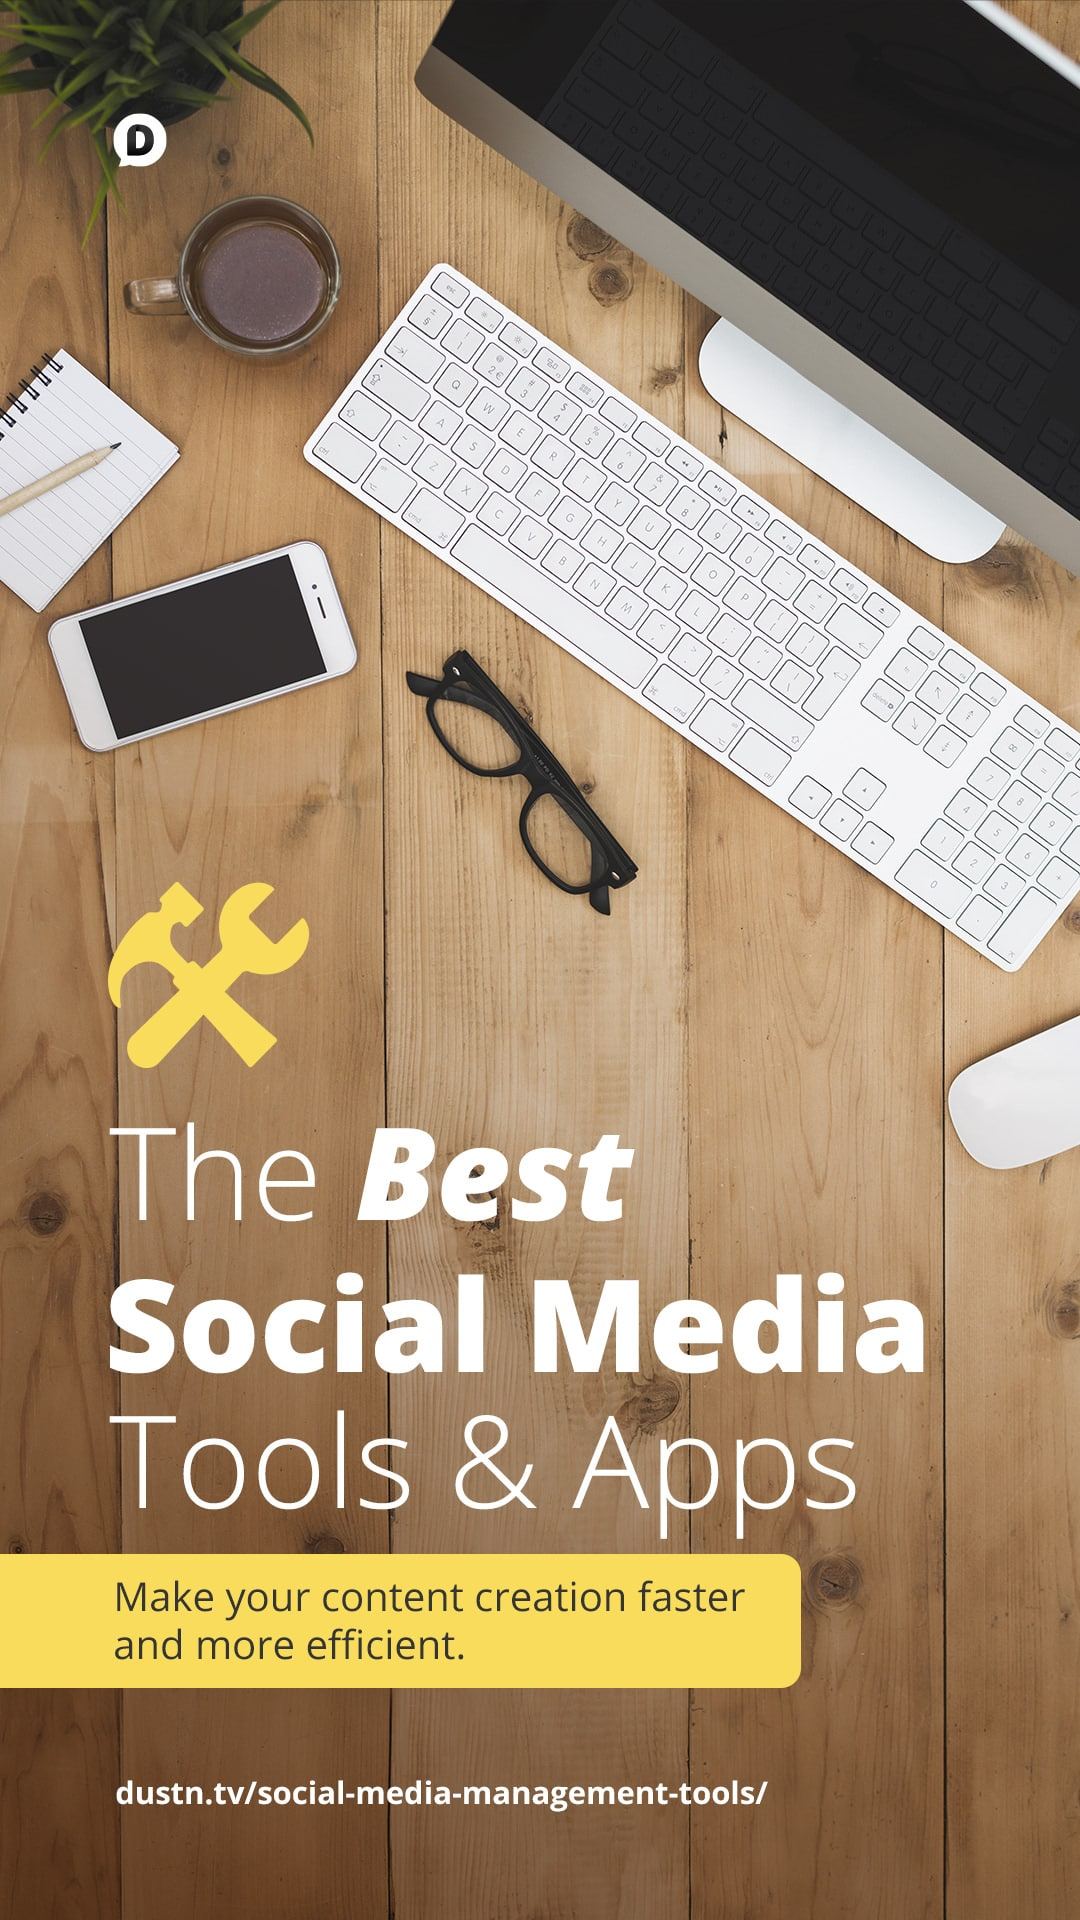 These social media management tools will allow you to save time and streamline your social media posting efforts.